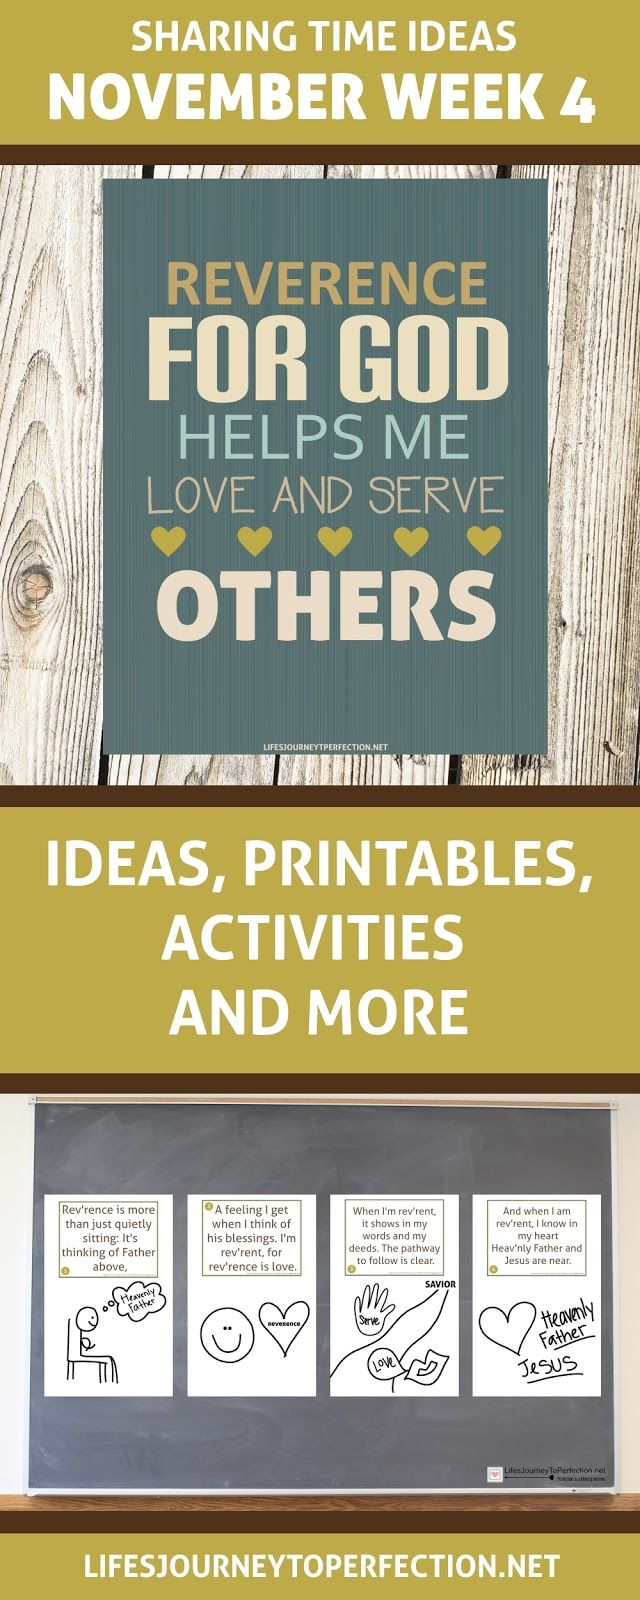 LDS SHARING TIME IDEAS FOR NOVEMBER WEEK 4: REVERENCE FOR GOD HELPS ME LOVE AND SERVE OTHERS PRIMARY IDEAS AND ACTIVITIES